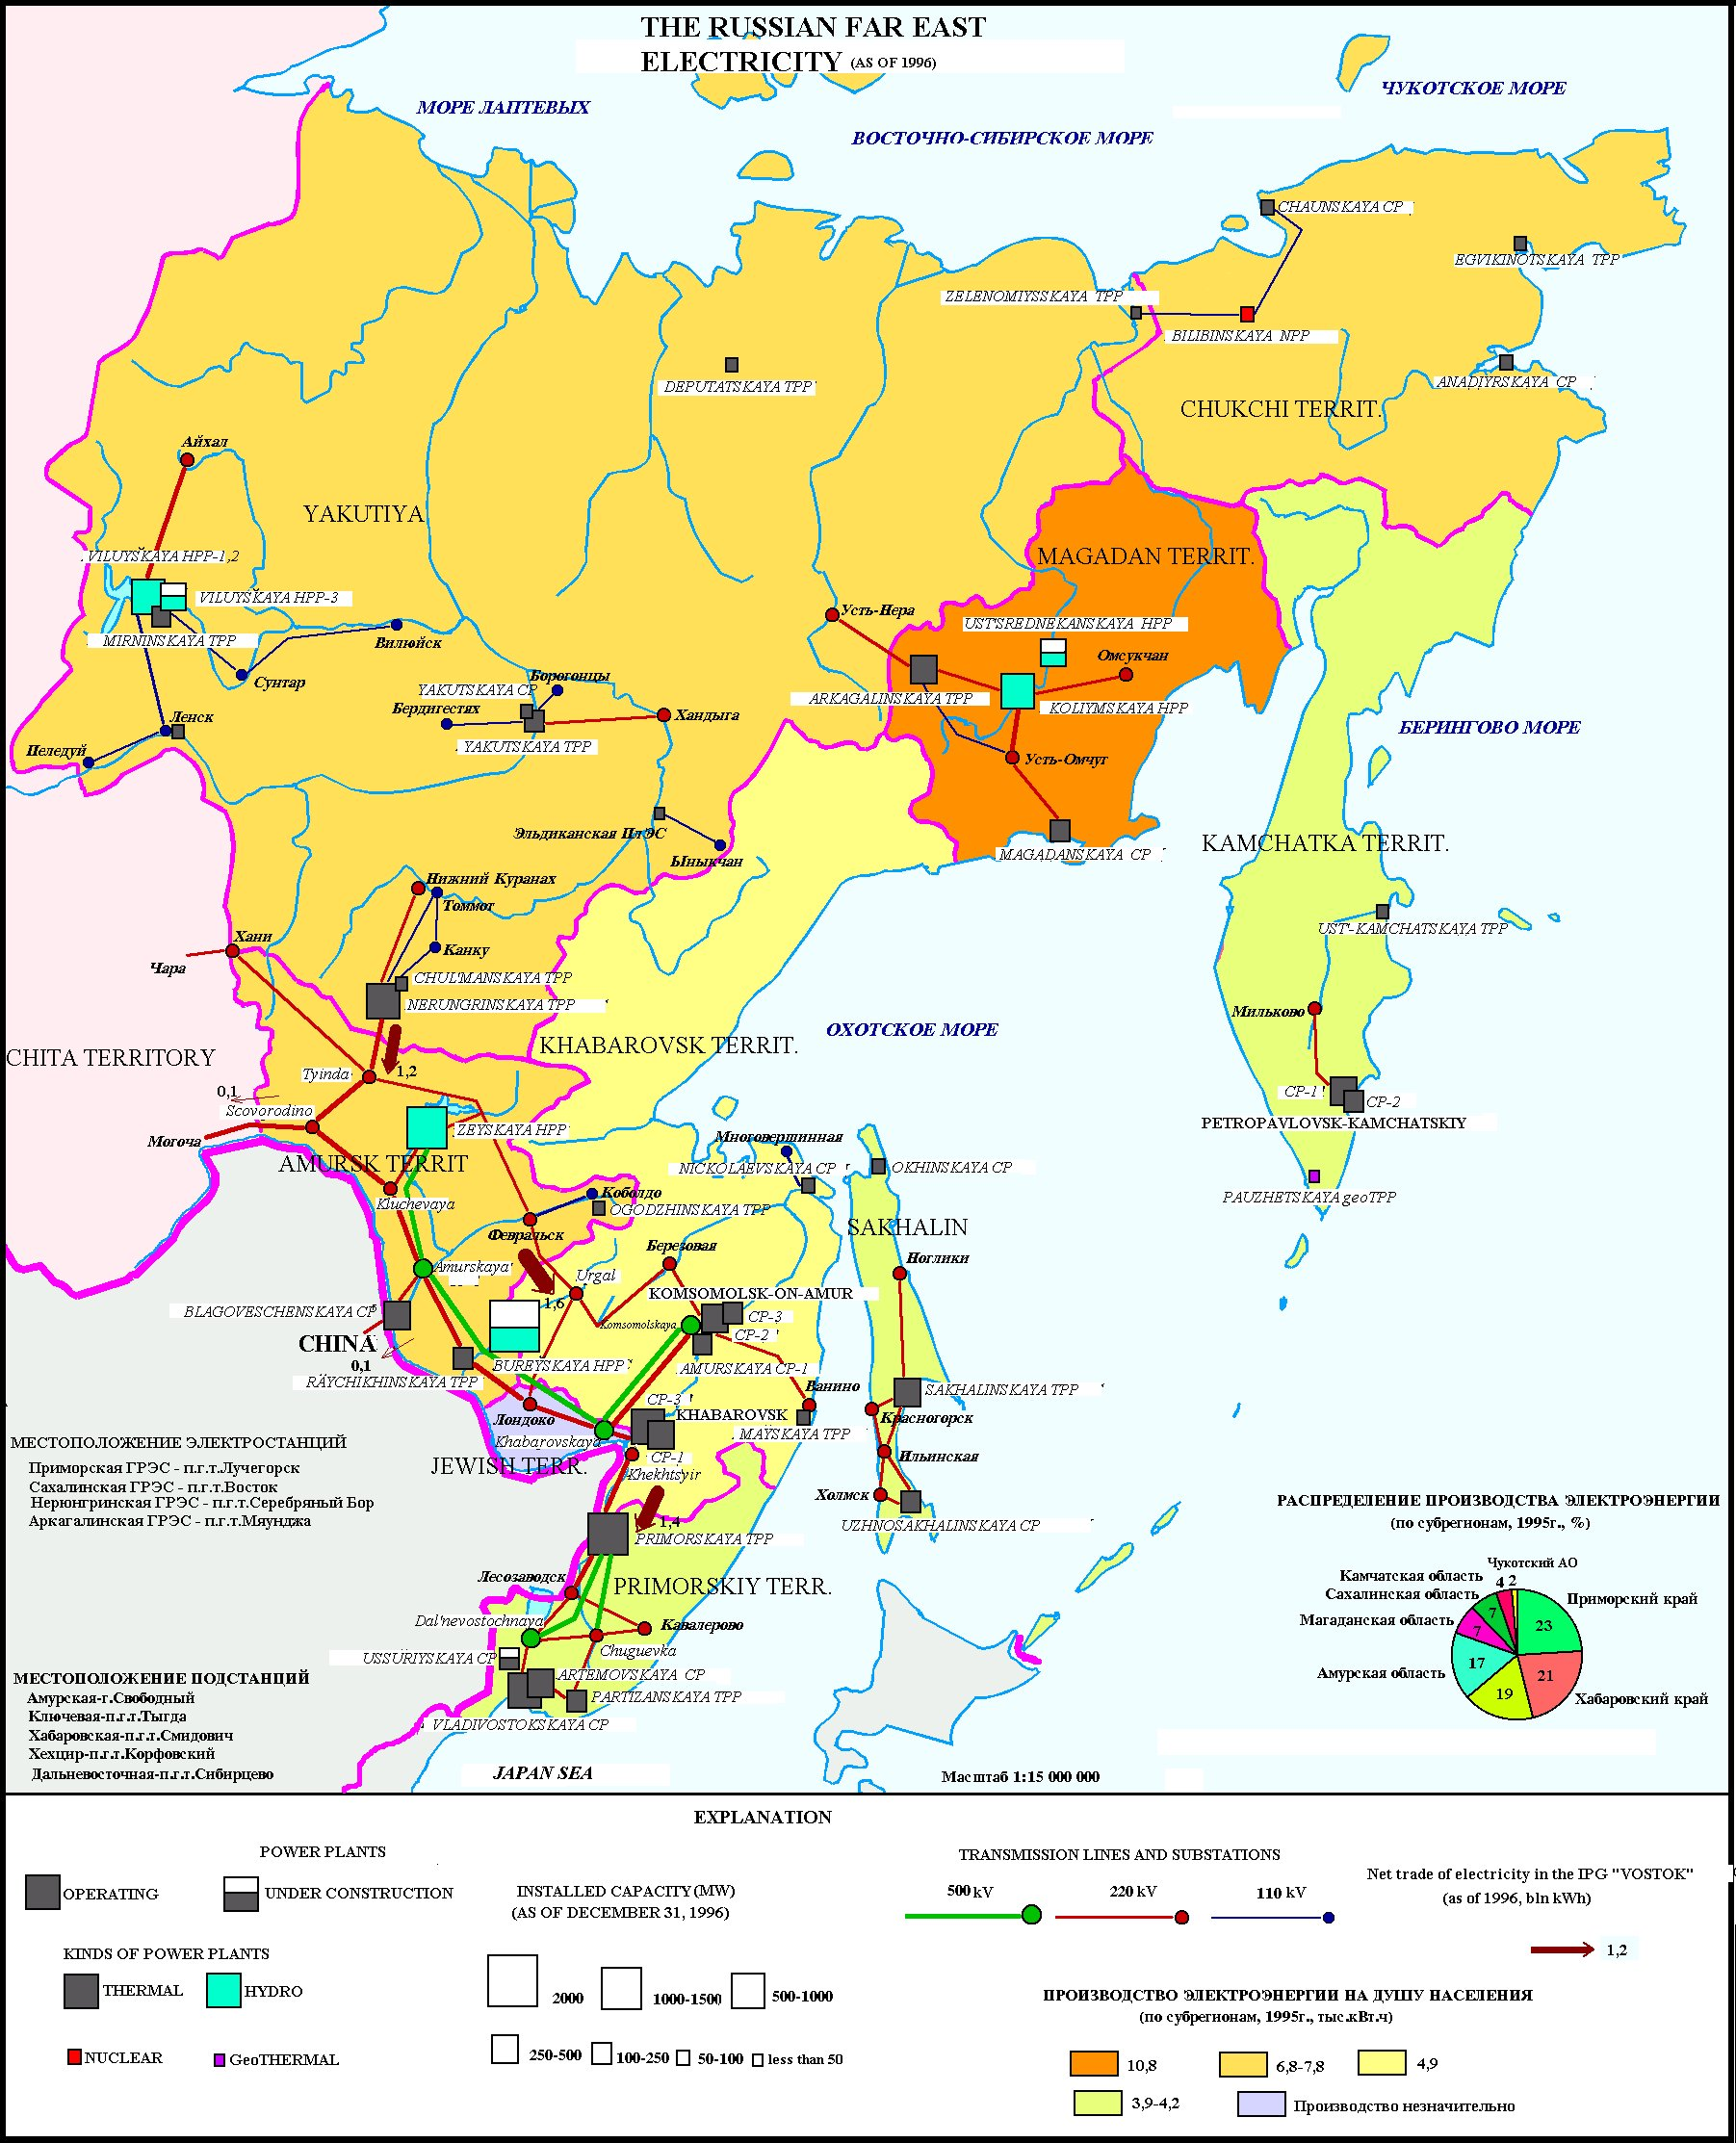 russian far east electric power study maps